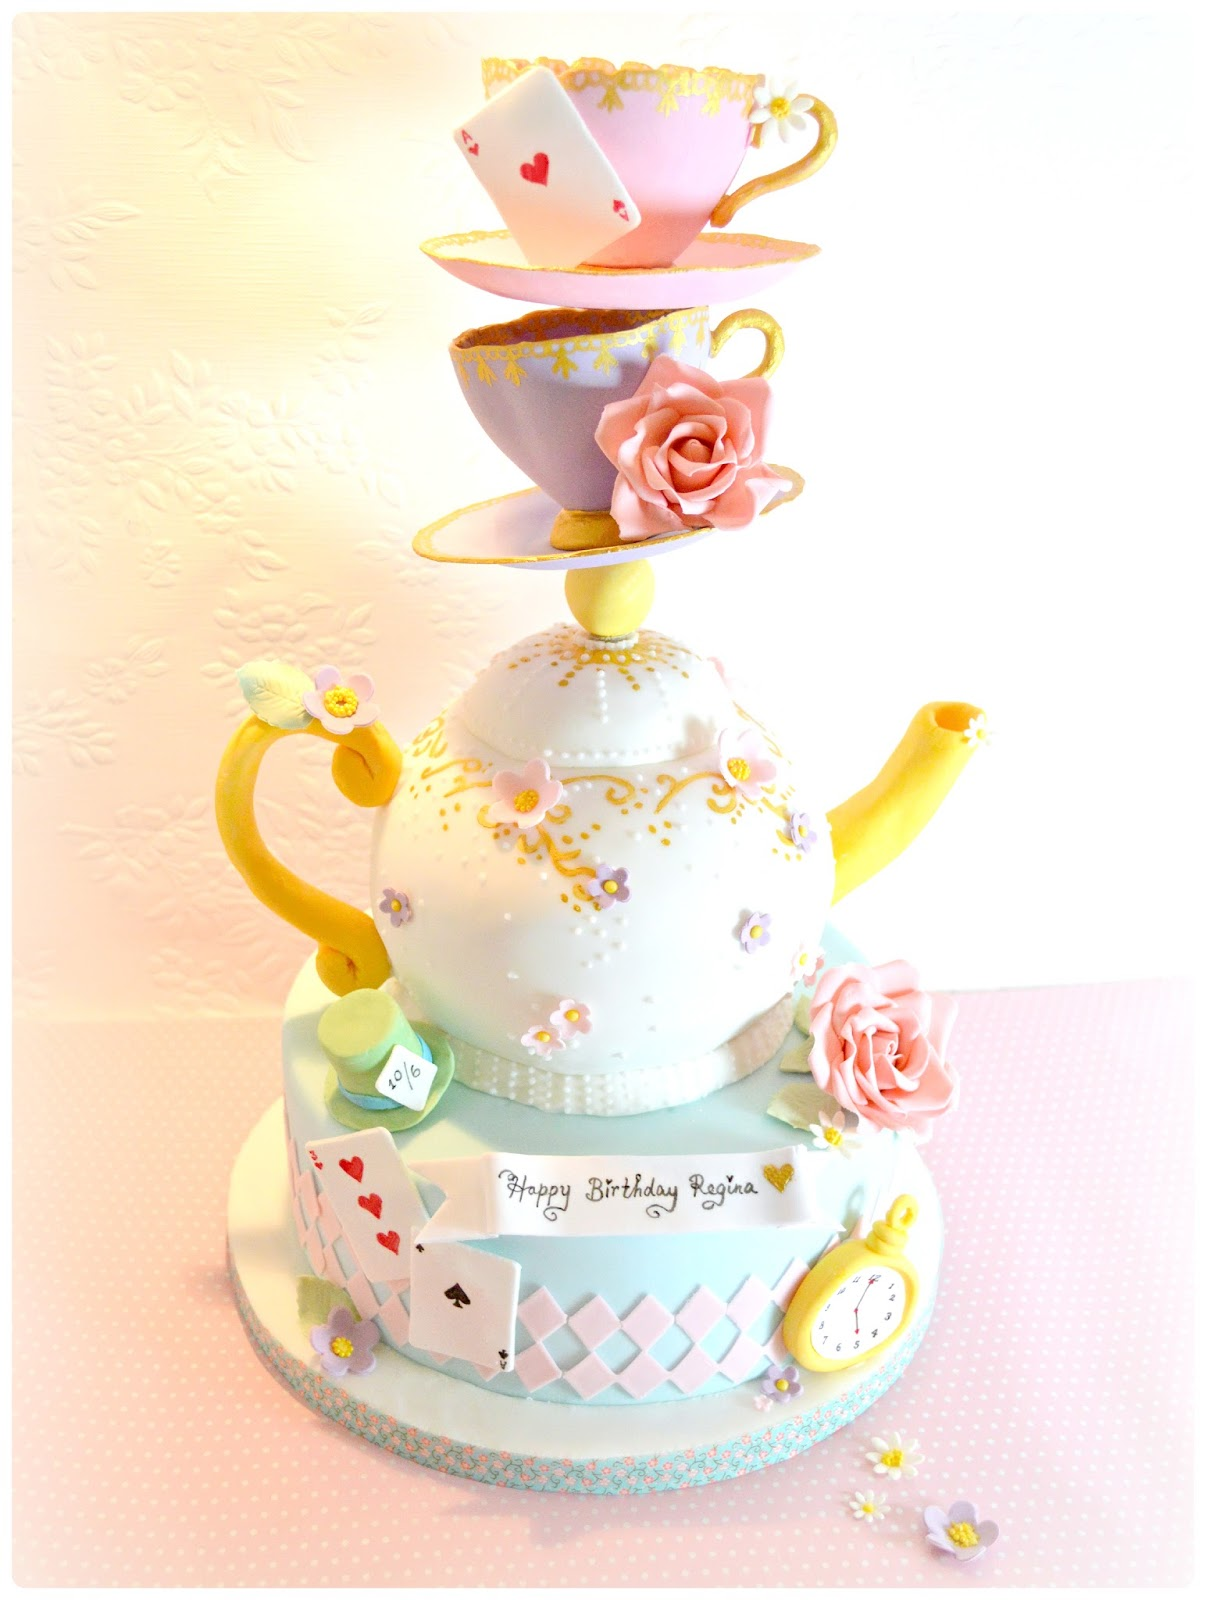 Topsy Turvy Alice in the Wonderland Mad Hatter Teapot and Teacups Birthday Cake London Cherie Kelly